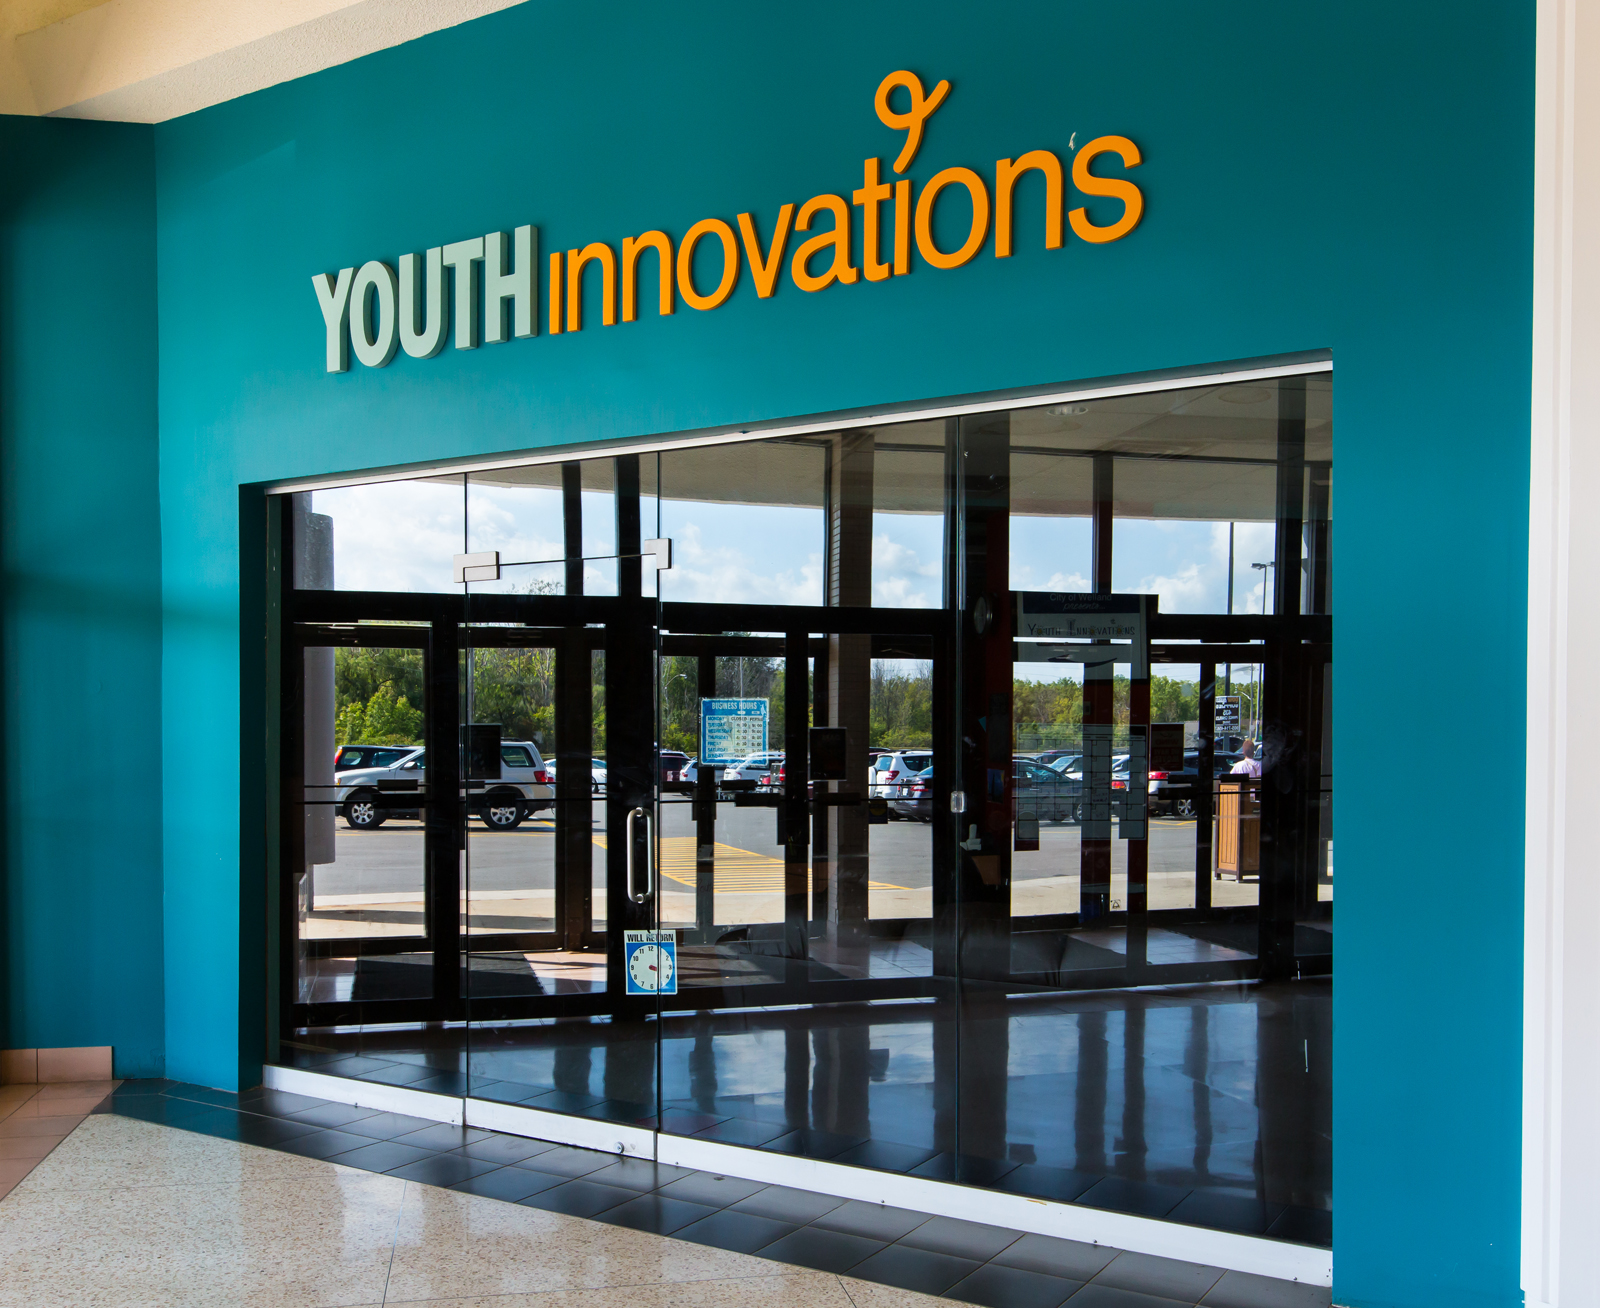 Youth Innovations Youth Centre